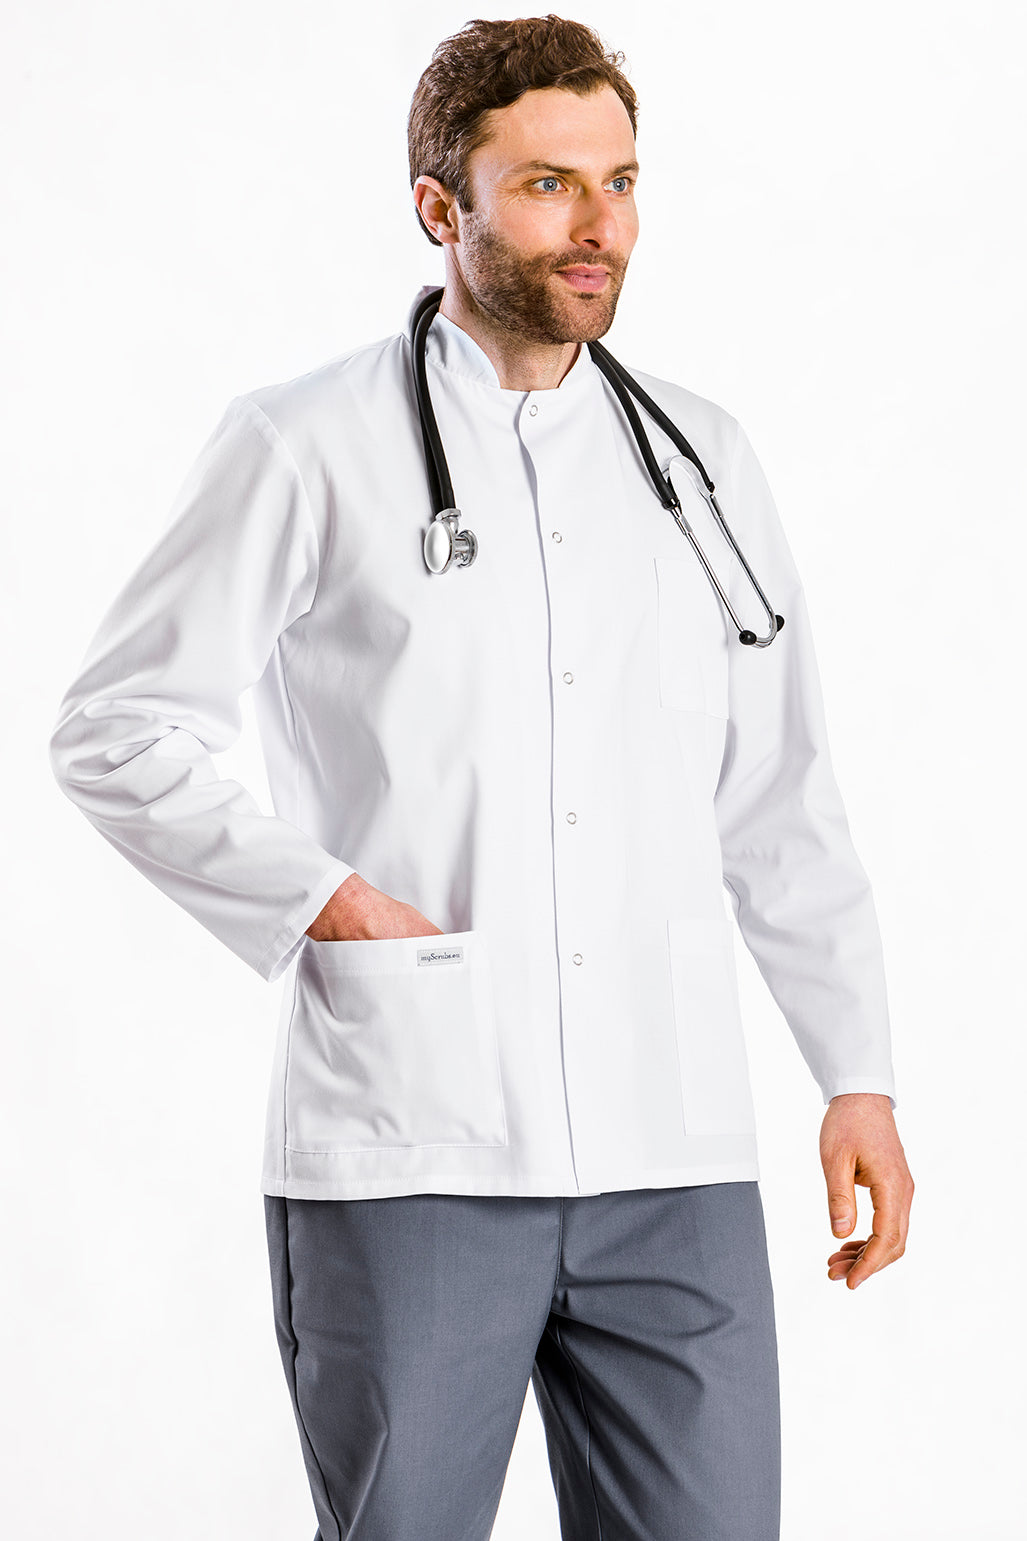 Lab coat, medical jacket